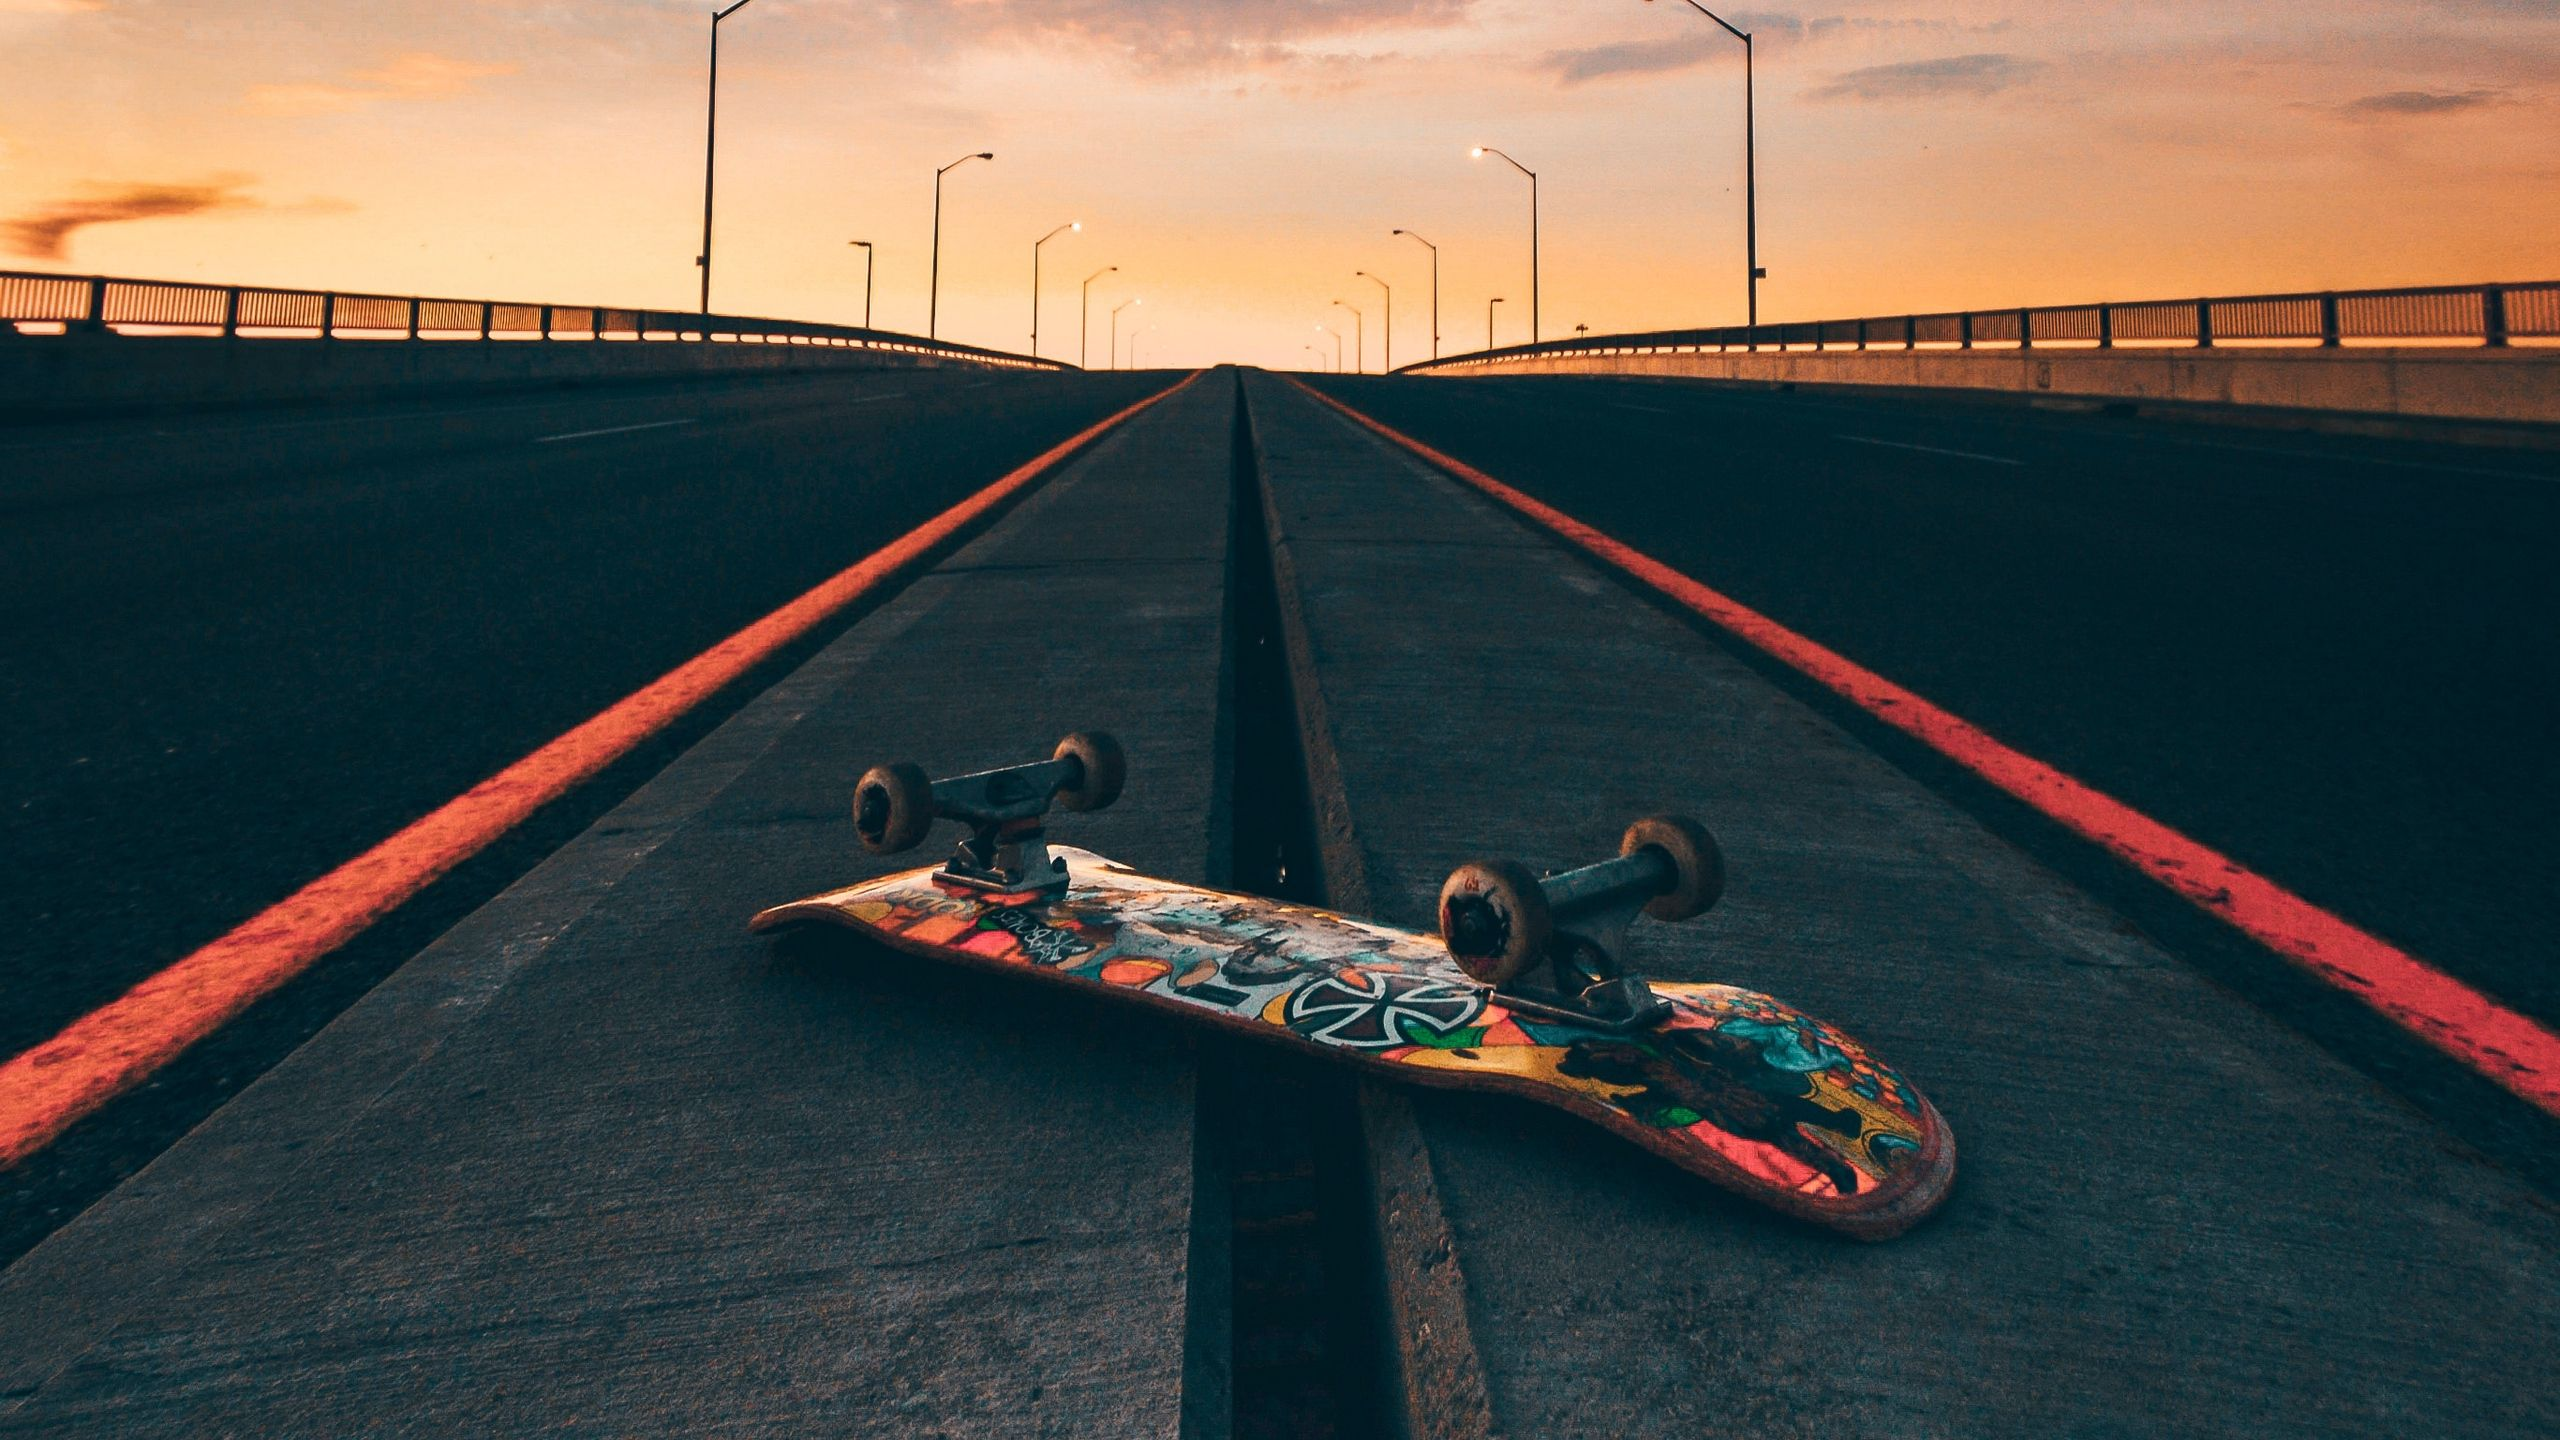 47 Skateboarding HD Wallpaper - Fondos de pantalla HD gratis